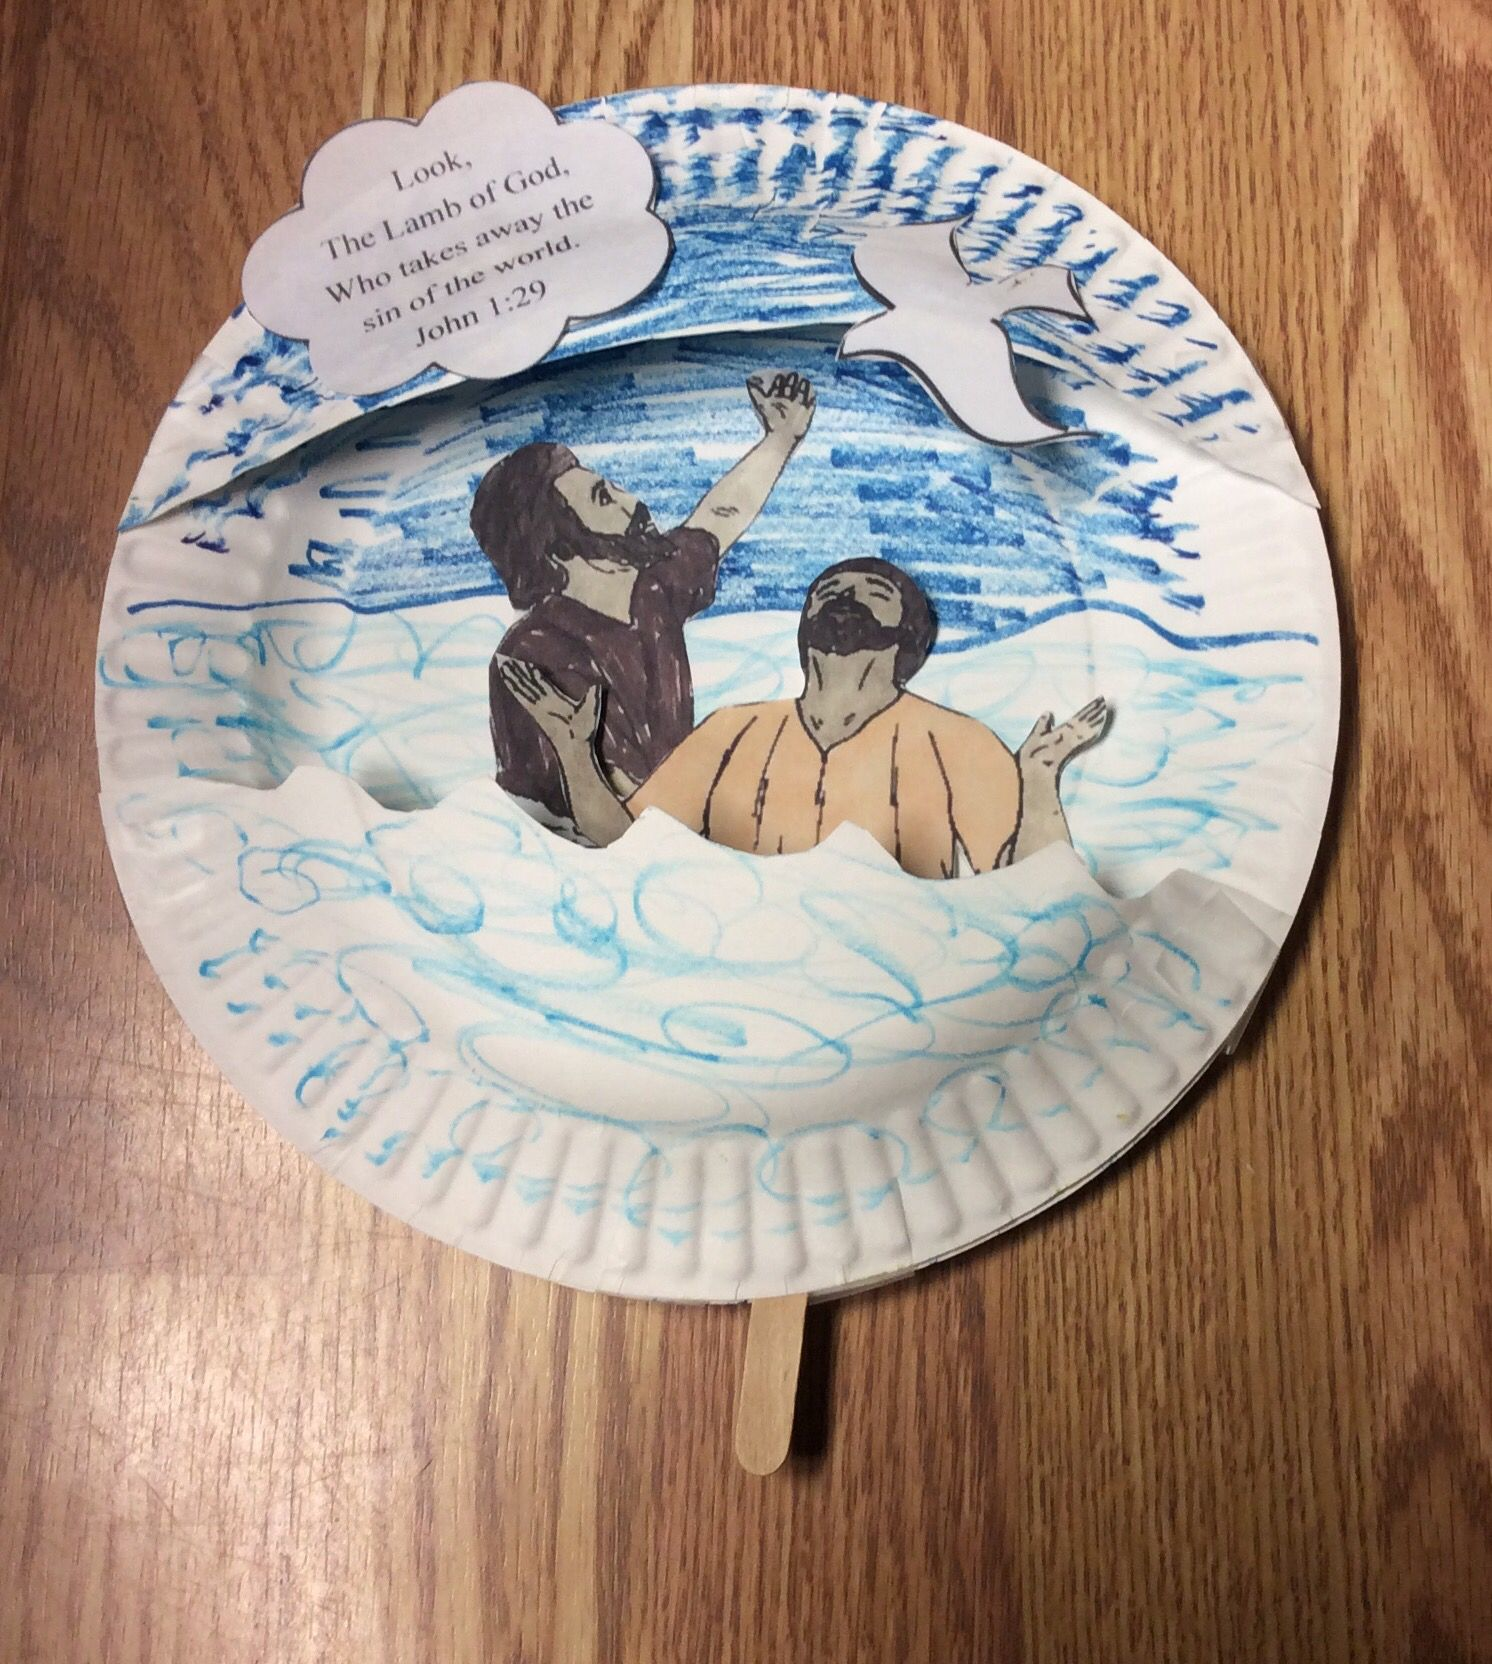 John Baptizing Jesus Craft For Children S Church Jesus Moves Up And Down With A Popsicle Stick